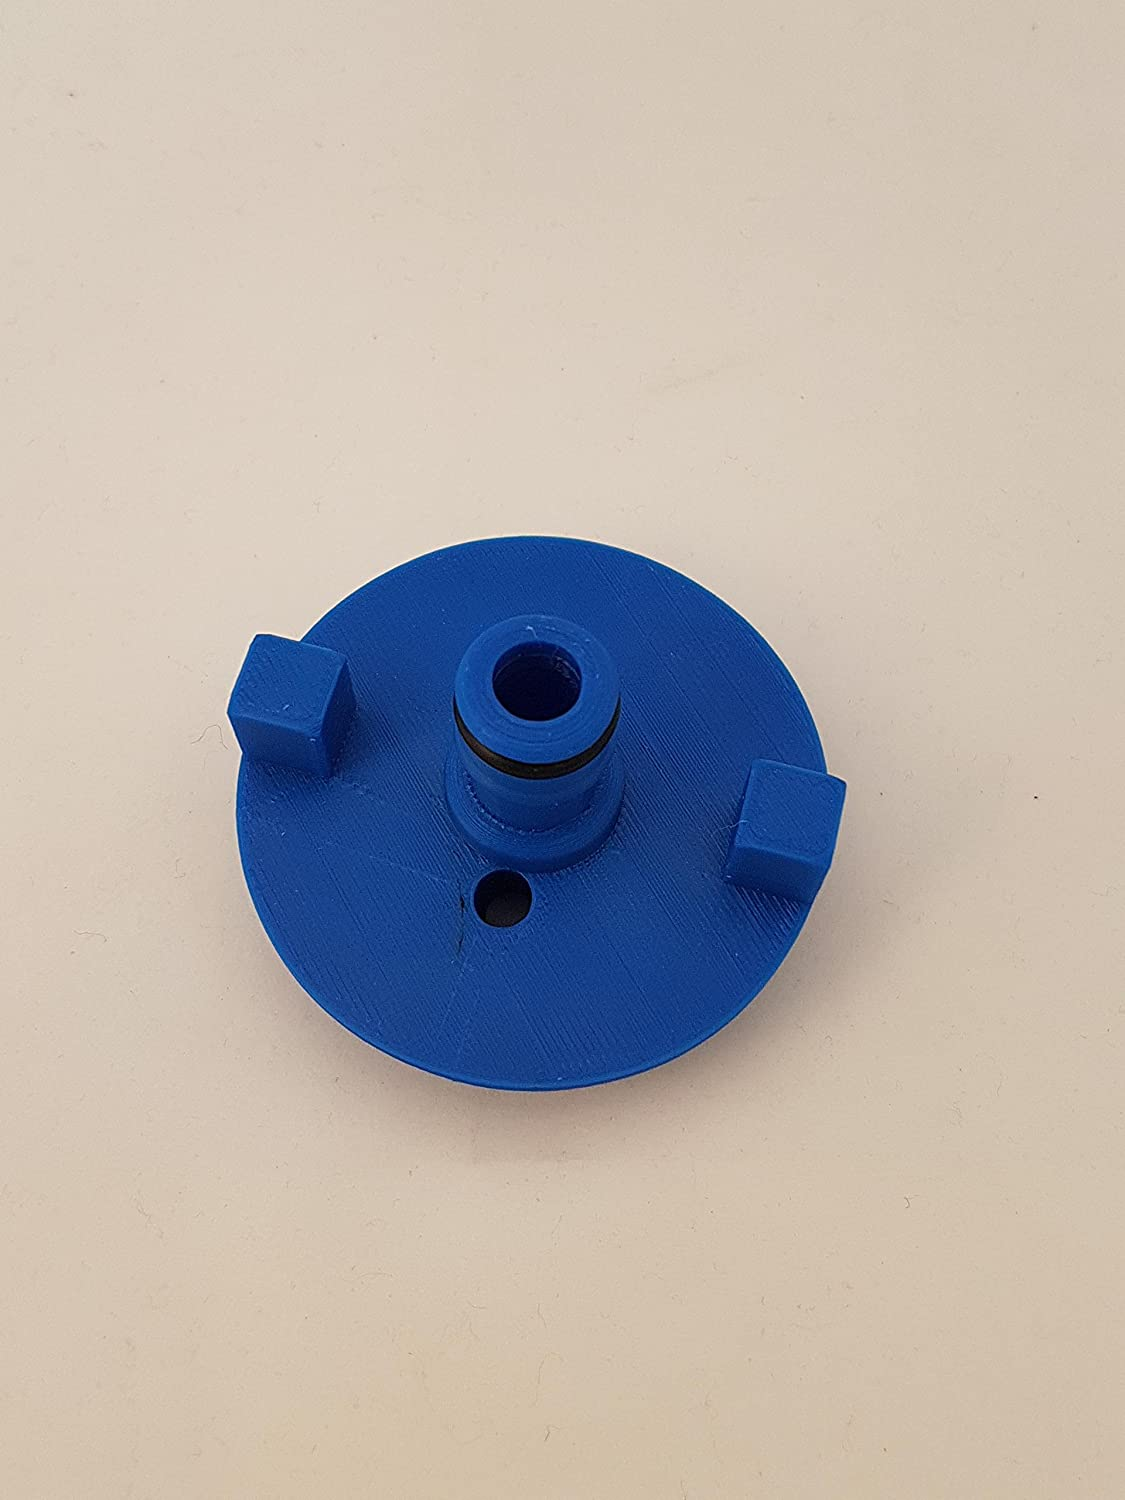 Camper Fiamma Water Filler CAP :Motorhome Water tank Filler cap with hose connector : Fits Fiamma type : BLUE adapter Camper Parts